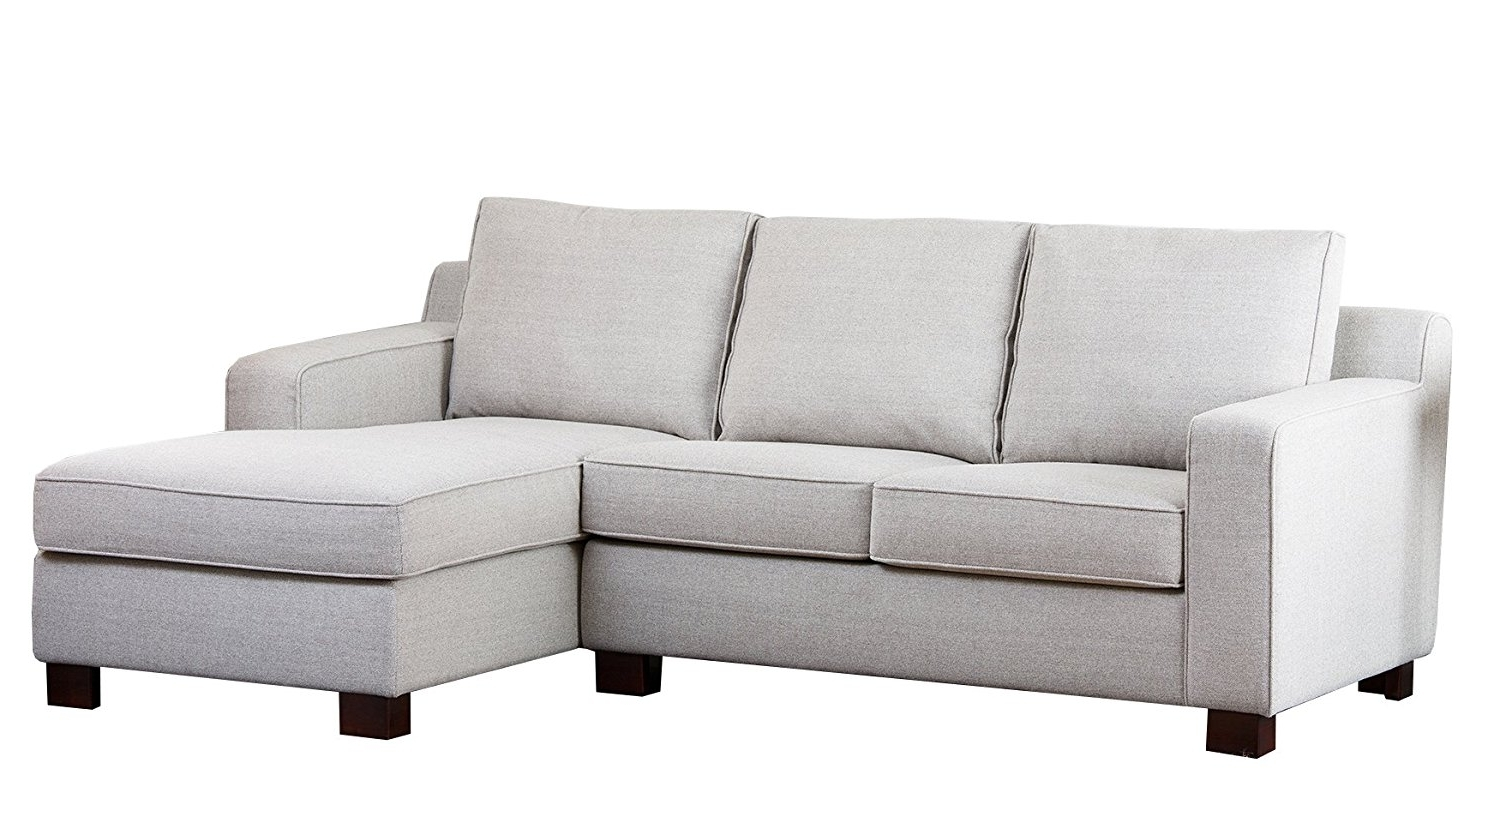 Best And Newest Amazon: Abbyson Regina Fabric Sectional Sofa, Grey: Home & Kitchen Within Regina Sectional Sofas (View 3 of 15)